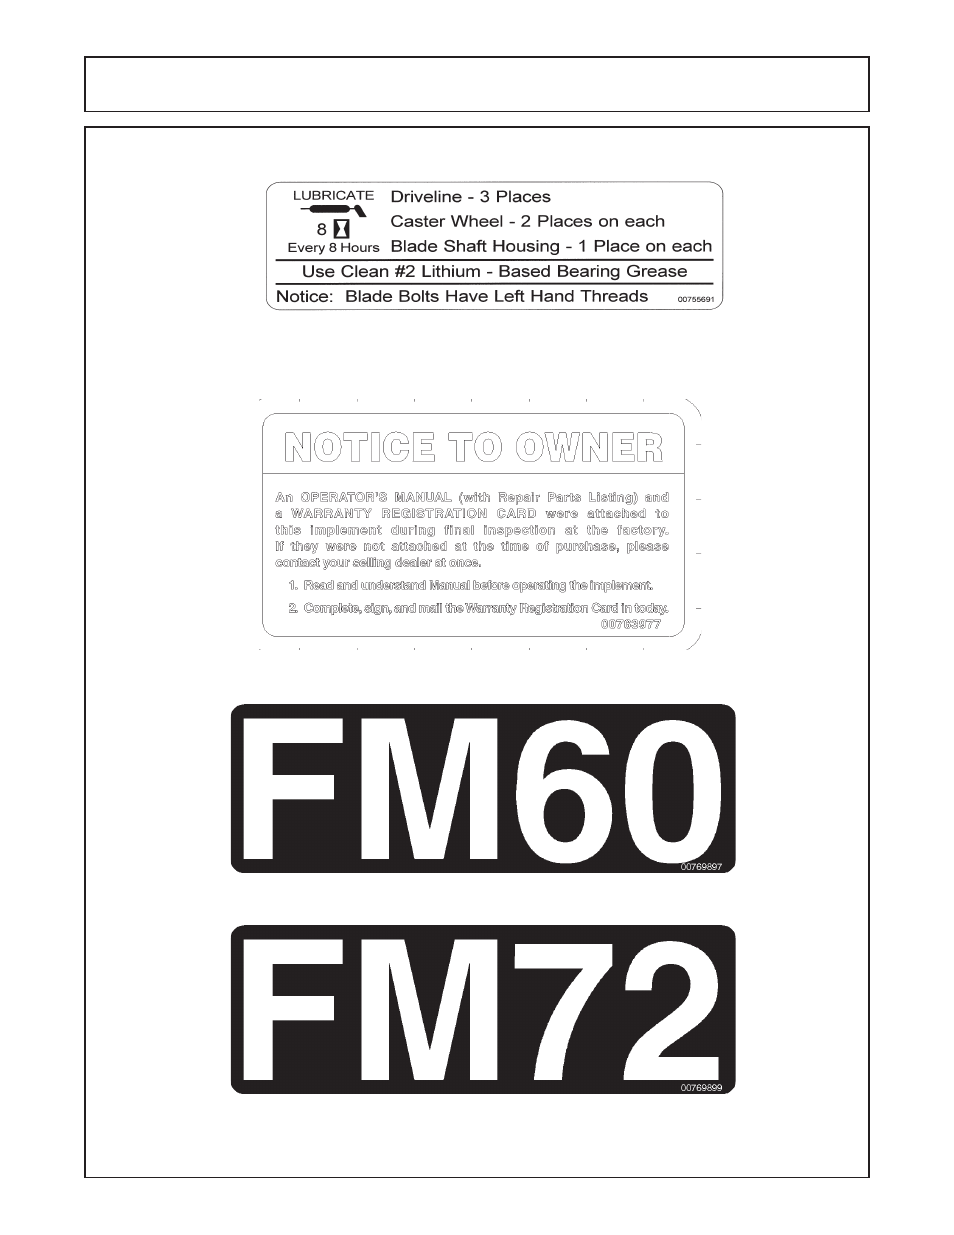 Safety | Servis-Rhino FM60/72 User Manual | Page 19 / 100